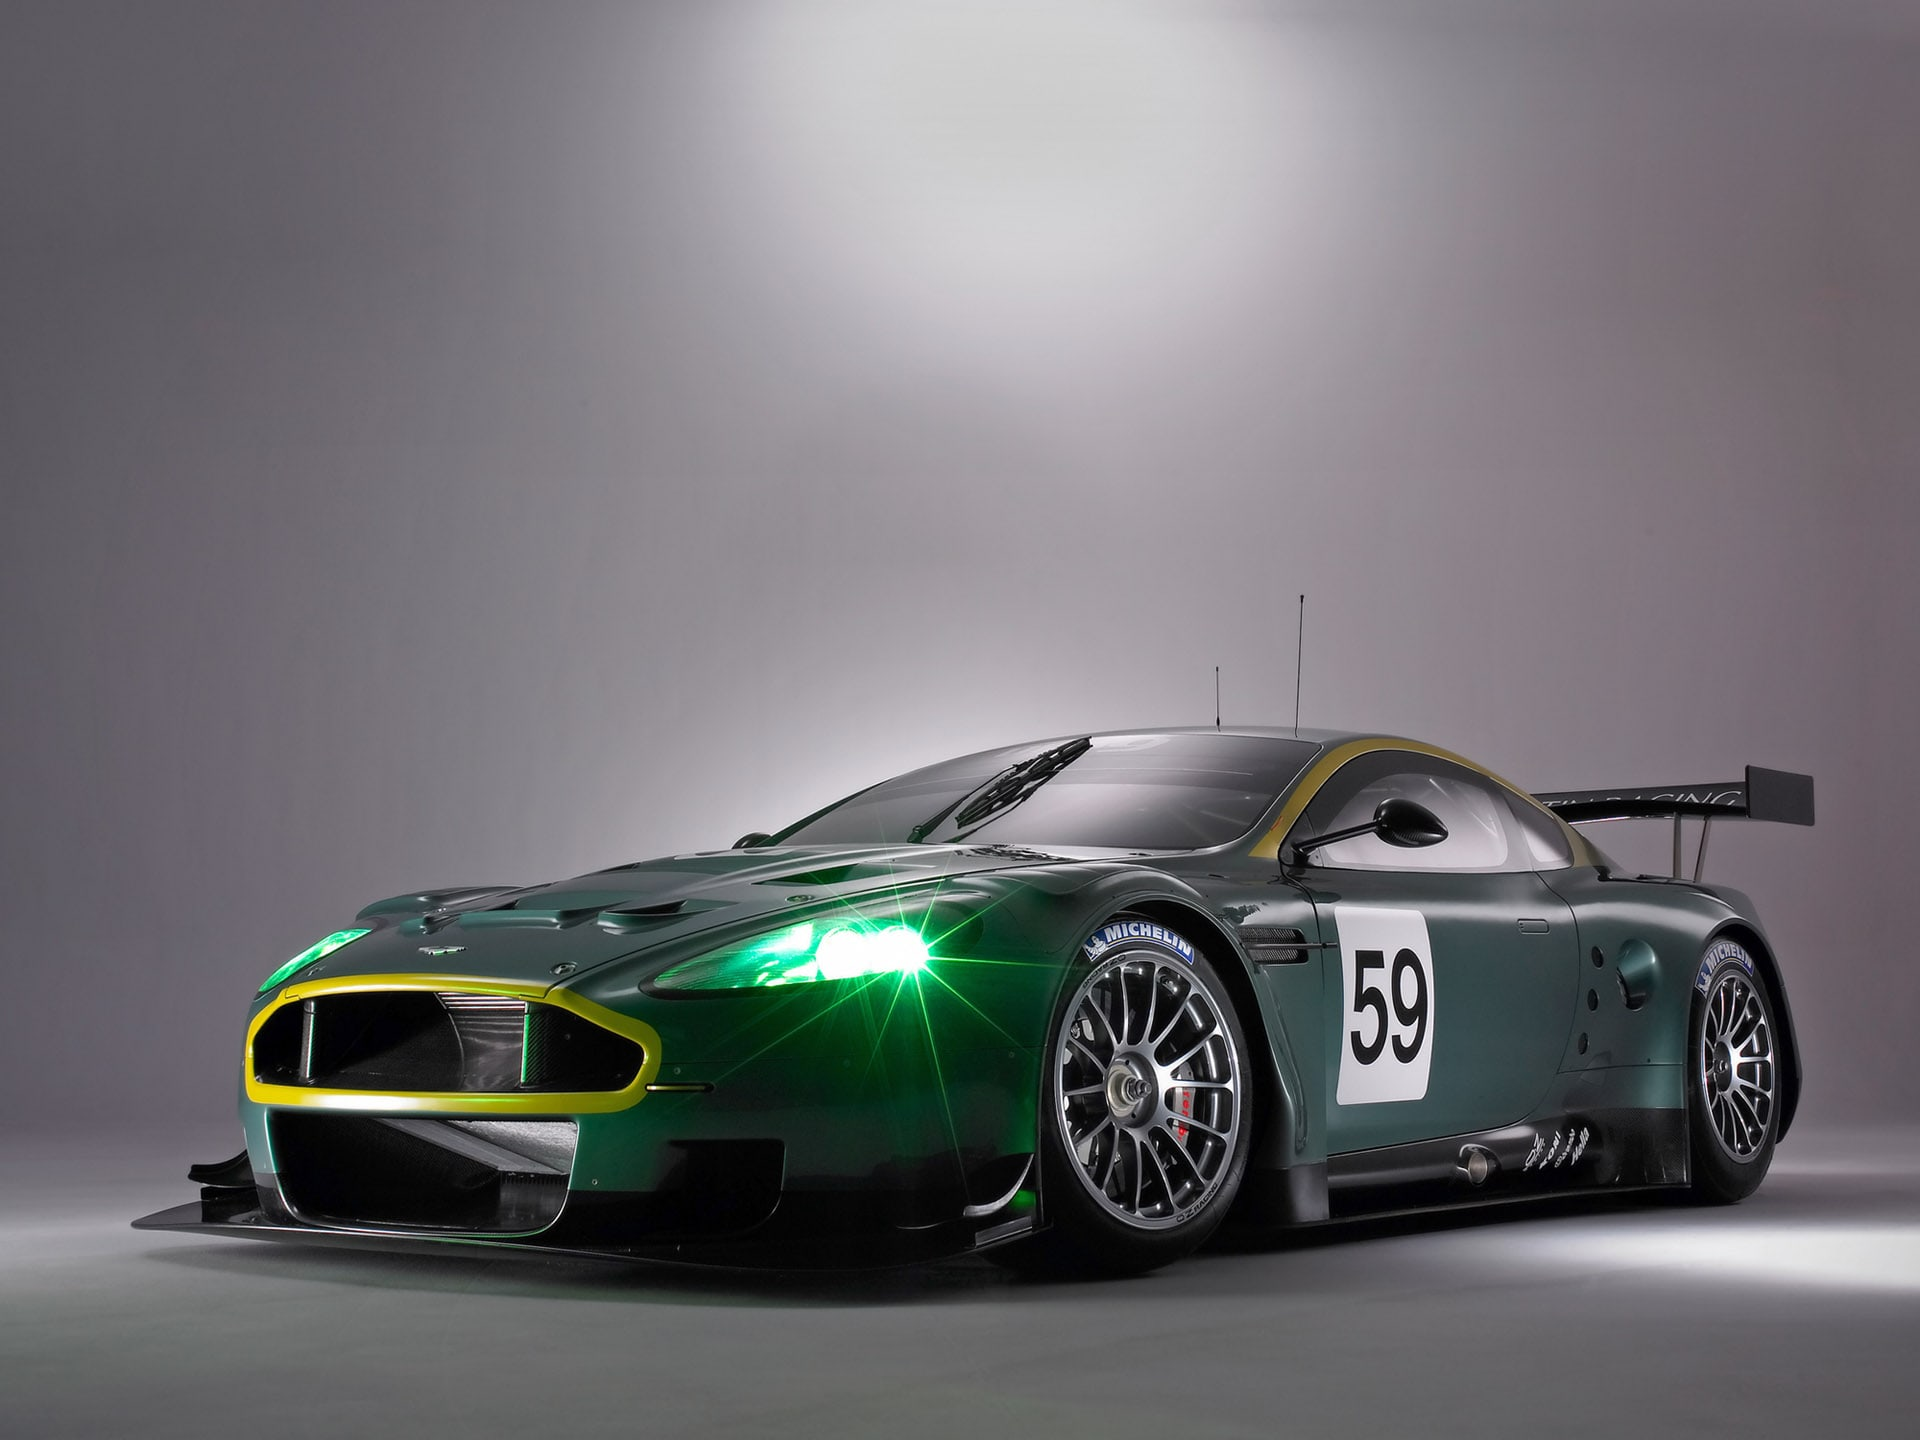 Aston Martin DBR9 Backgrounds